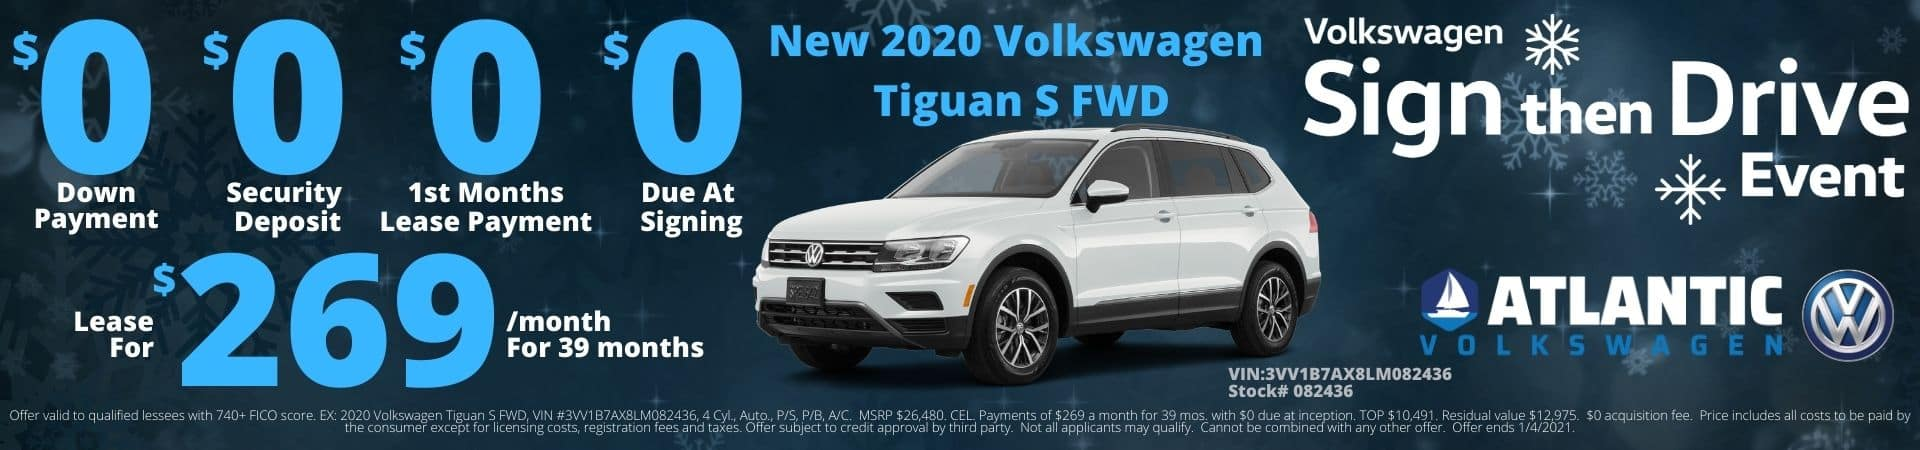 Tiguan S Special Offer